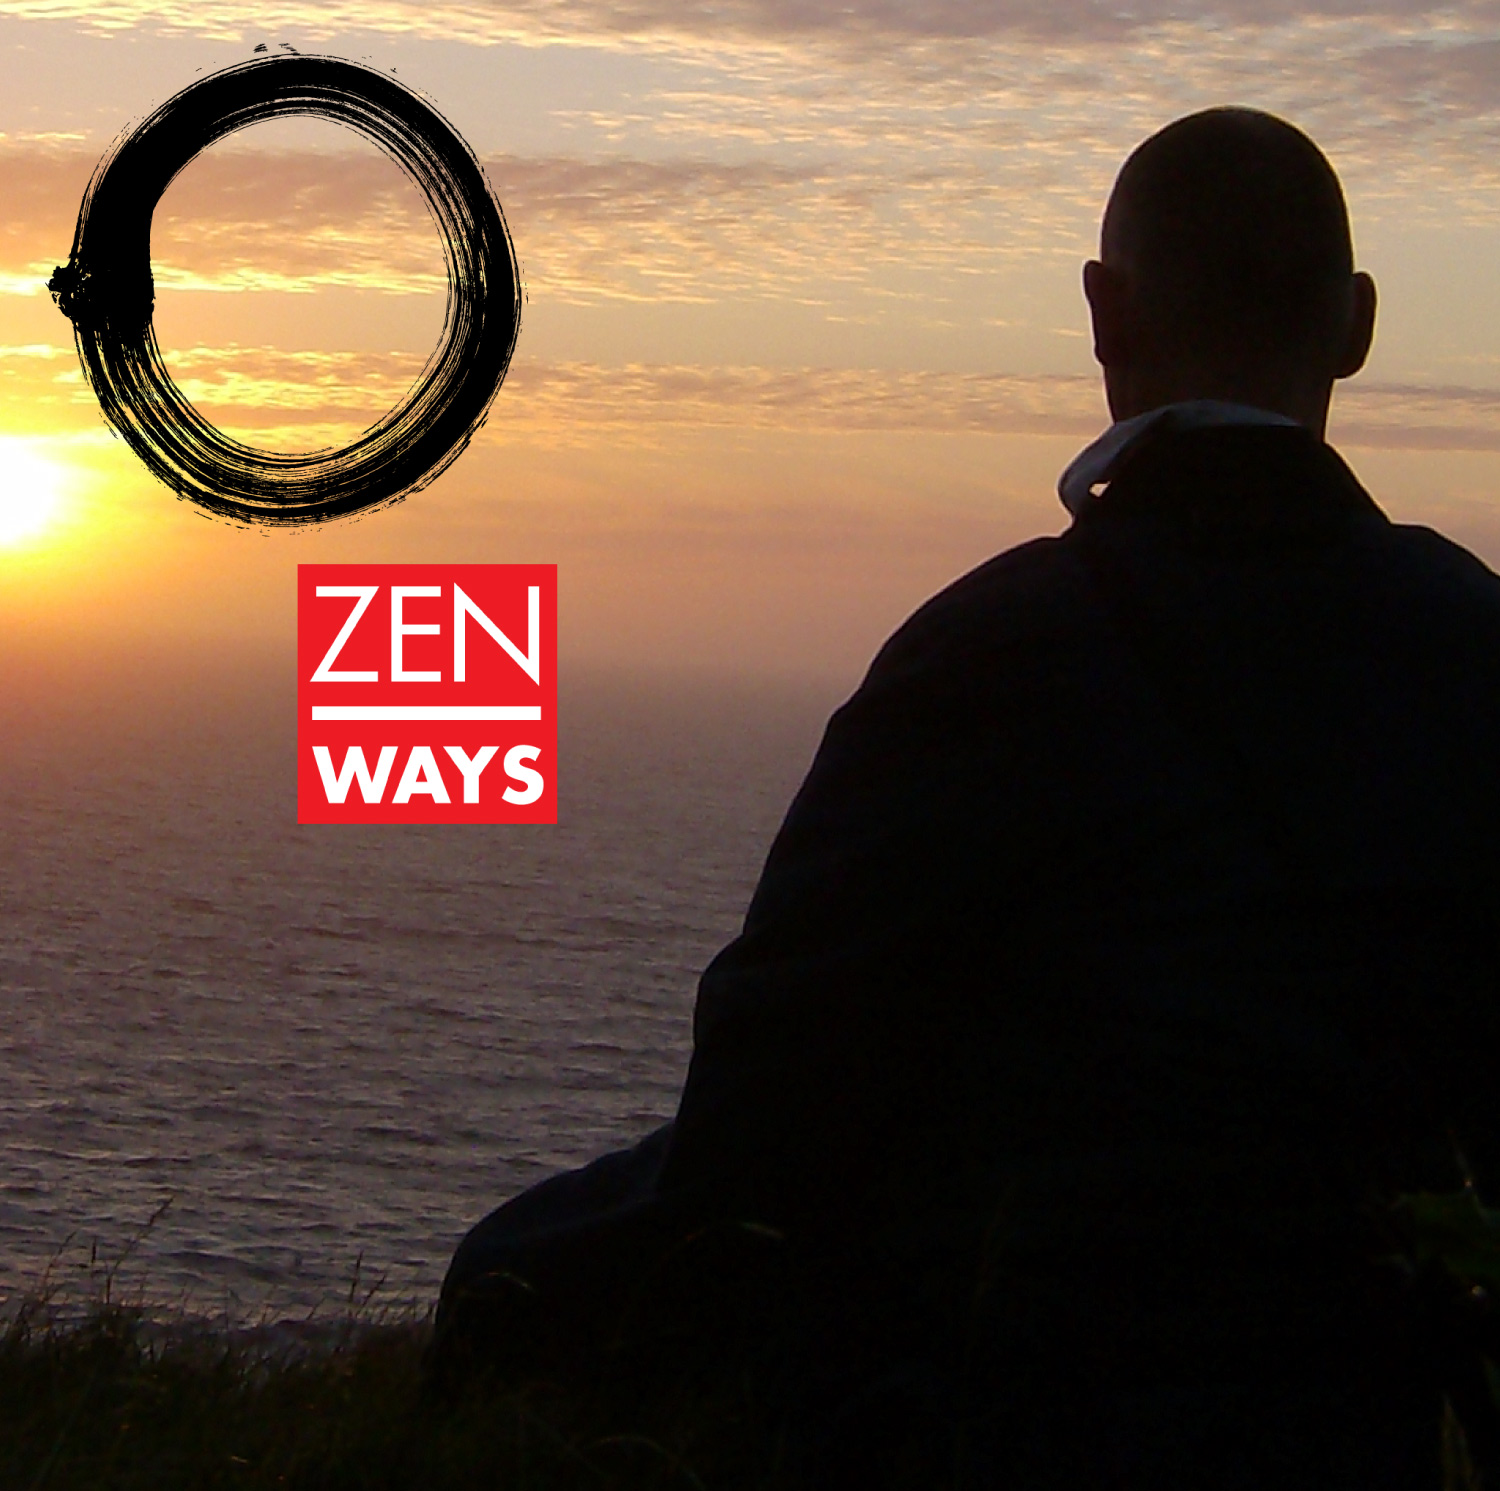 Zenways guided Zen meditations